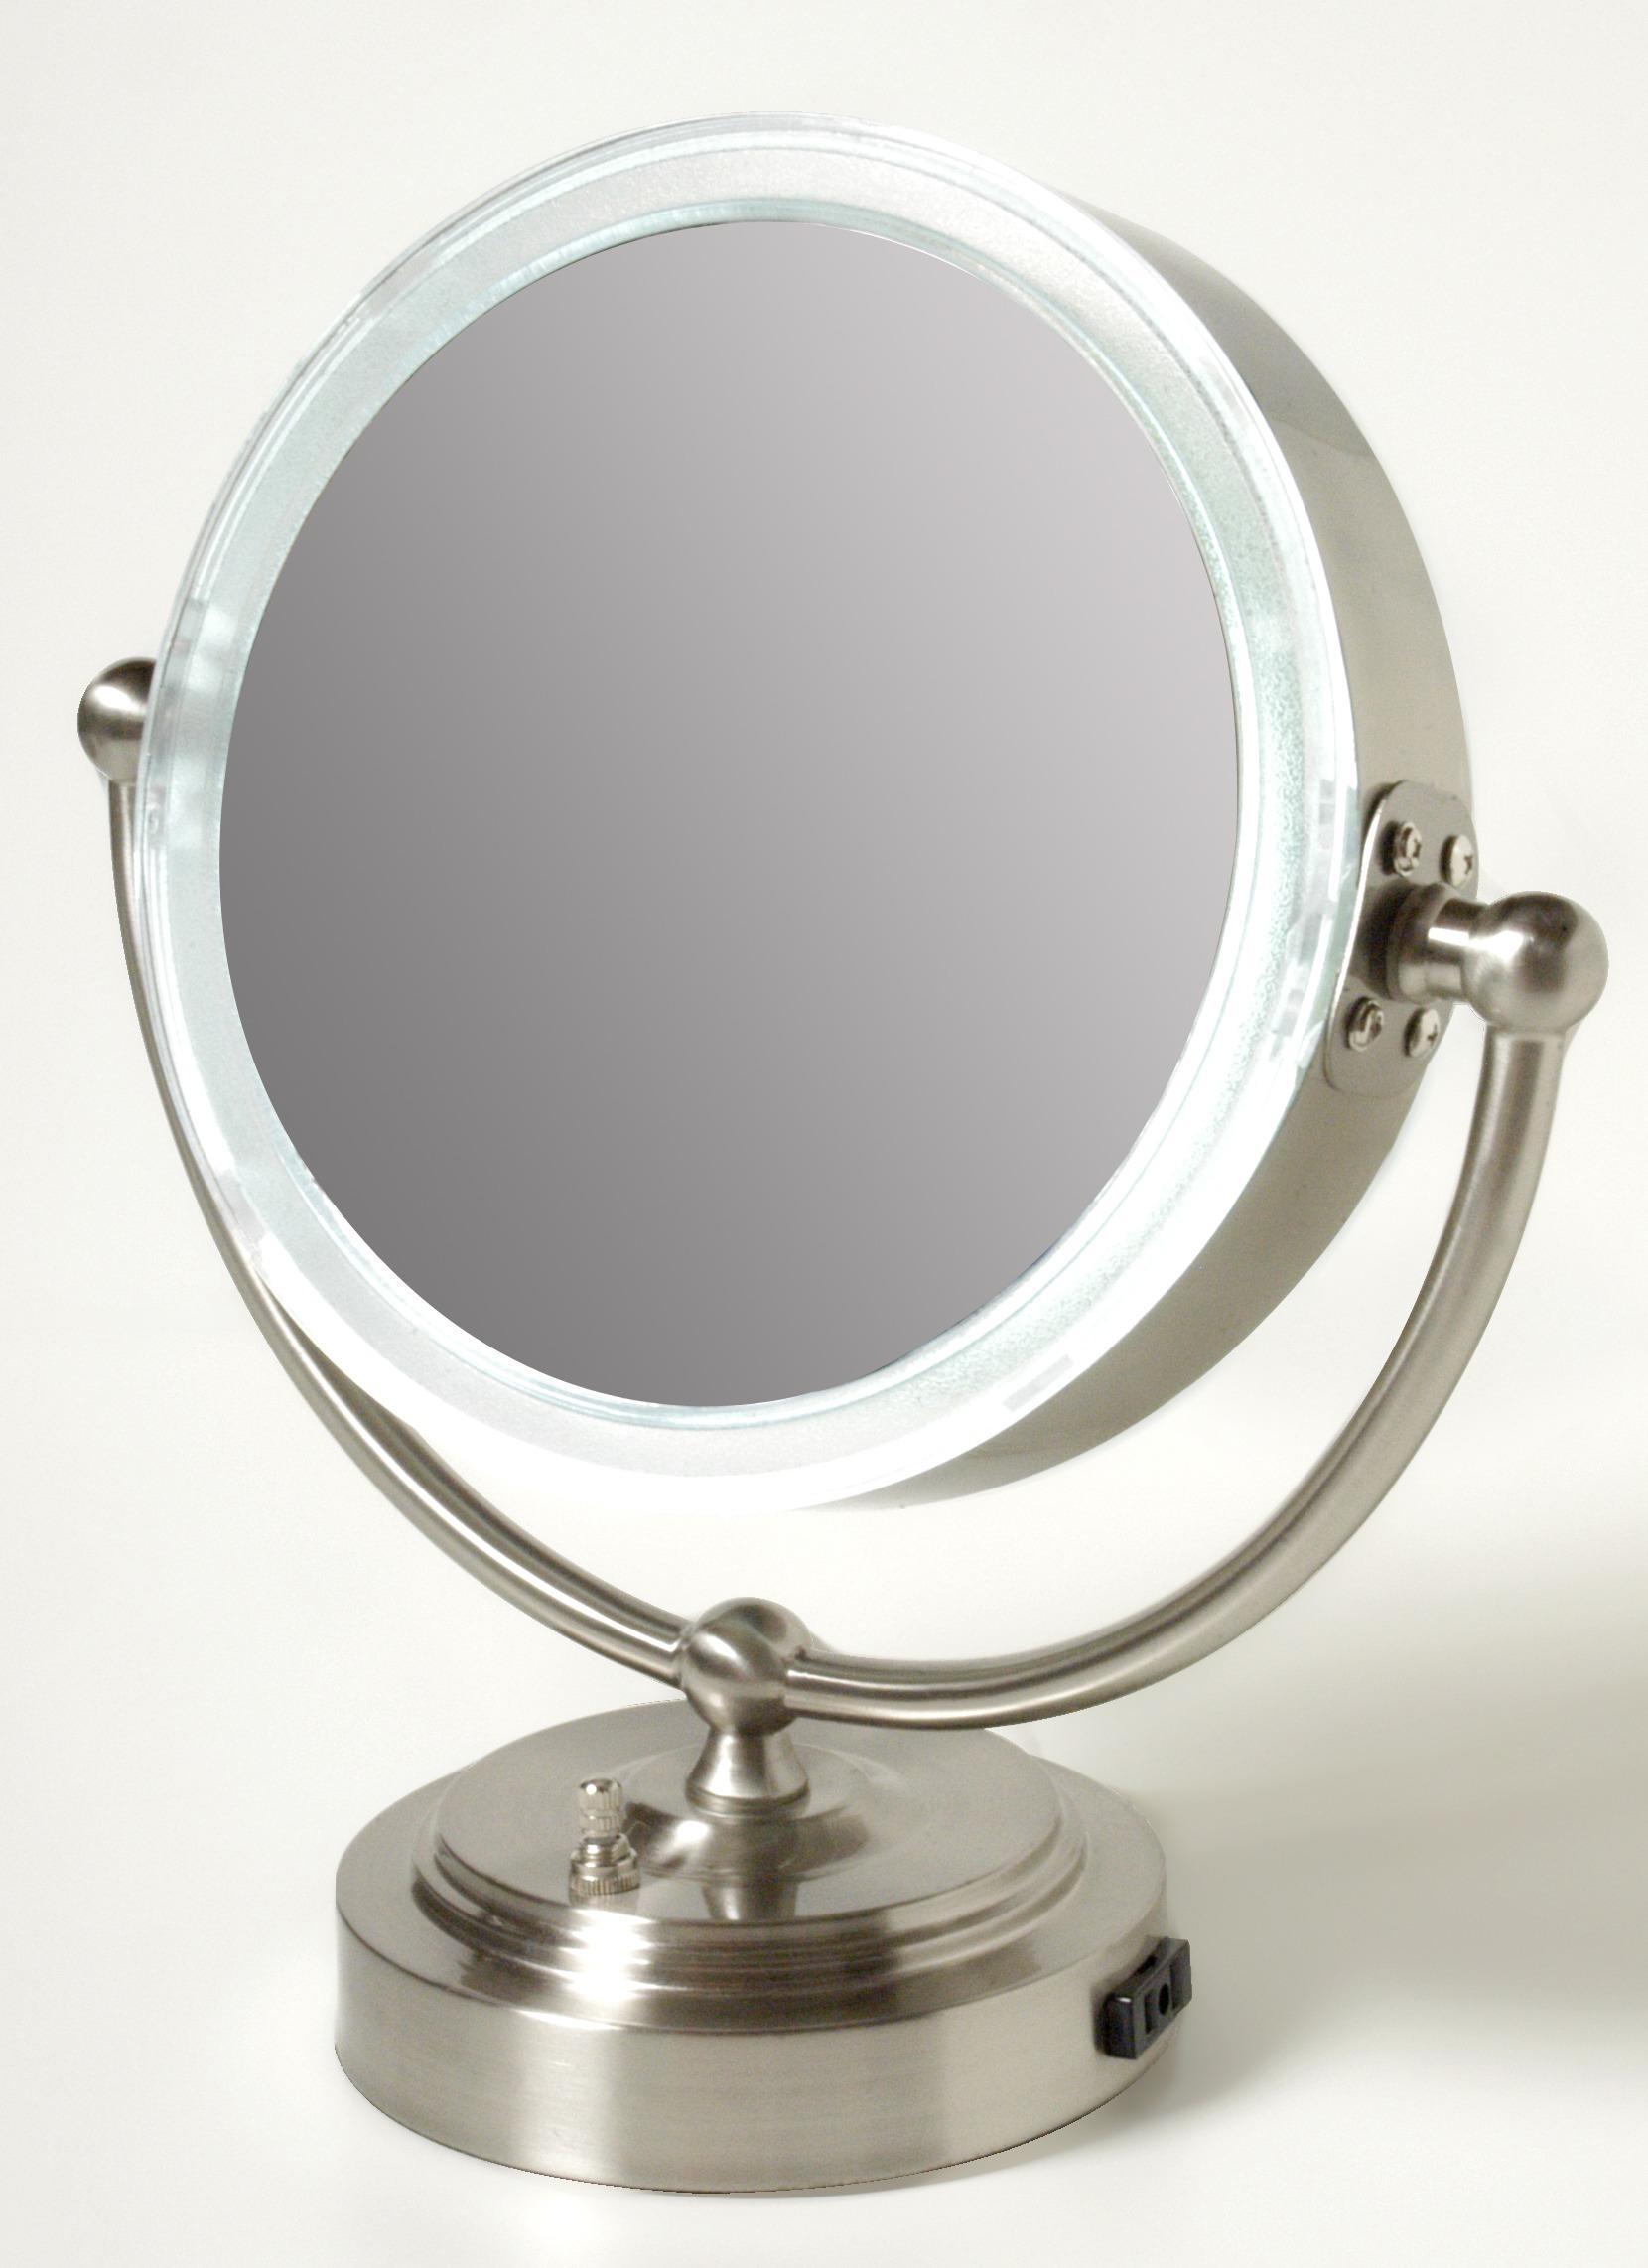 Accessories: Beautiful Conair Makeup Mirror For Your Perfect Inside Lit Makeup Mirrors (Image 6 of 20)